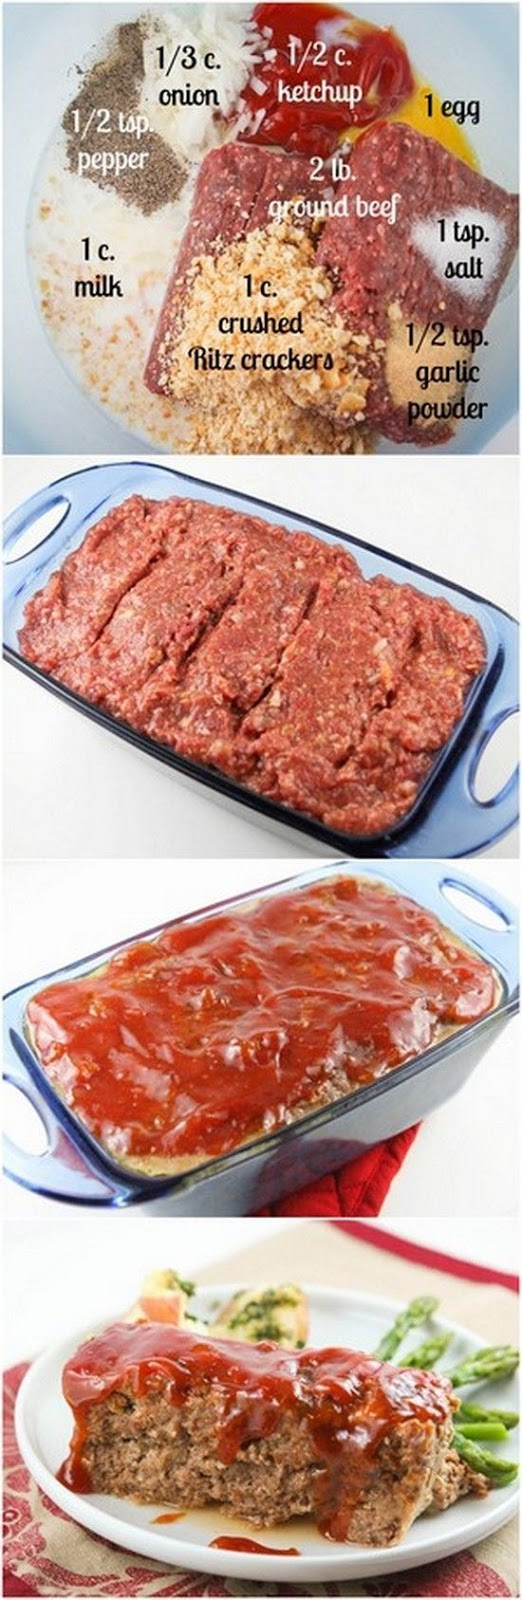 BEST EVER MEATLOAF #BEST #EVER #MEATLOAF   #DESSERTS #HEALTHYFOOD #EASY_RECIPES #DINNER #LAUCH #DELICIOUS #EASY #HOLIDAYS #RECIPE #SPECIAL_DIET #WORLD_CUISINE #CAKE #GRILL #APPETIZERS #HEALTHY_RECIPES #DRINKS #COOKING_METHOD #ITALIAN_RECIPES #MEAT #VEGAN_RECIPES #COOKIES #PASTA #FRUIT #SALAD #SOUP_APPETIZERS #NON_ALCOHOLIC_DRINKS #MEAL_PLANNING #VEGETABLES #SOUP #PASTRY #CHOCOLATE #DAIRY #ALCOHOLIC_DRINKS #BULGUR_SALAD #BAKING #SNACKS #BEEF_RECIPES #MEAT_APPETIZERS #MEXICAN_RECIPES #BREAD #ASIAN_RECIPES #SEAFOOD_APPETIZERS #MUFFINS #BREAKFAST_AND_BRUNCH #CONDIMENTS #CUPCAKES #CHEESE #CHICKEN_RECIPES #PIE #COFFEE #NO_BAKE_DESSERTS #HEALTHY_SNACKS #SEAFOOD #GRAIN #LUNCHES_DINNERS #MEXICAN #QUICK_BREAD #LIQUOR